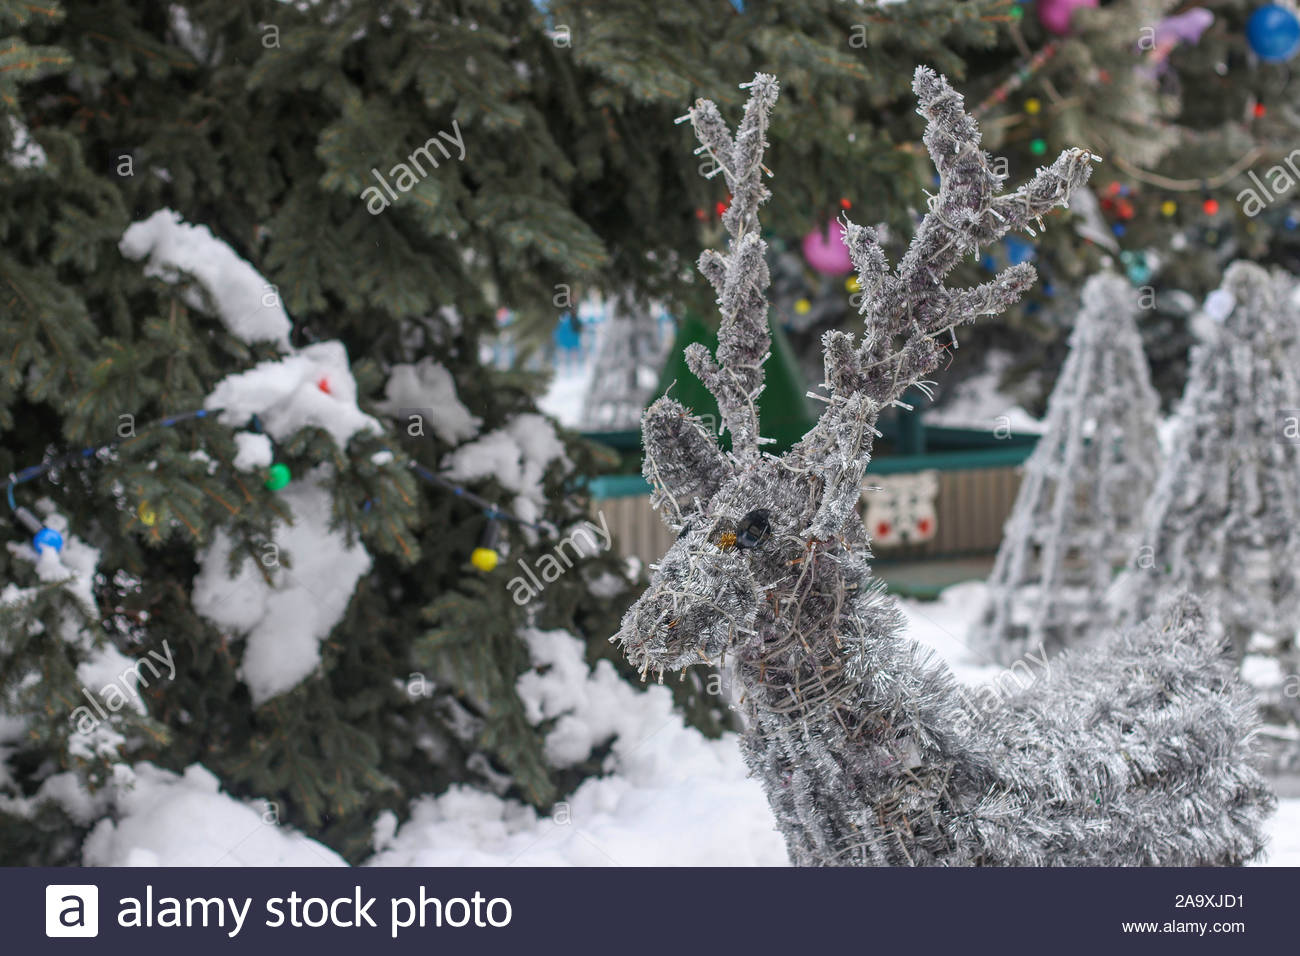 silver deer from shiny garlands in outdoor park design of a recreation area for children 2A9XJD1